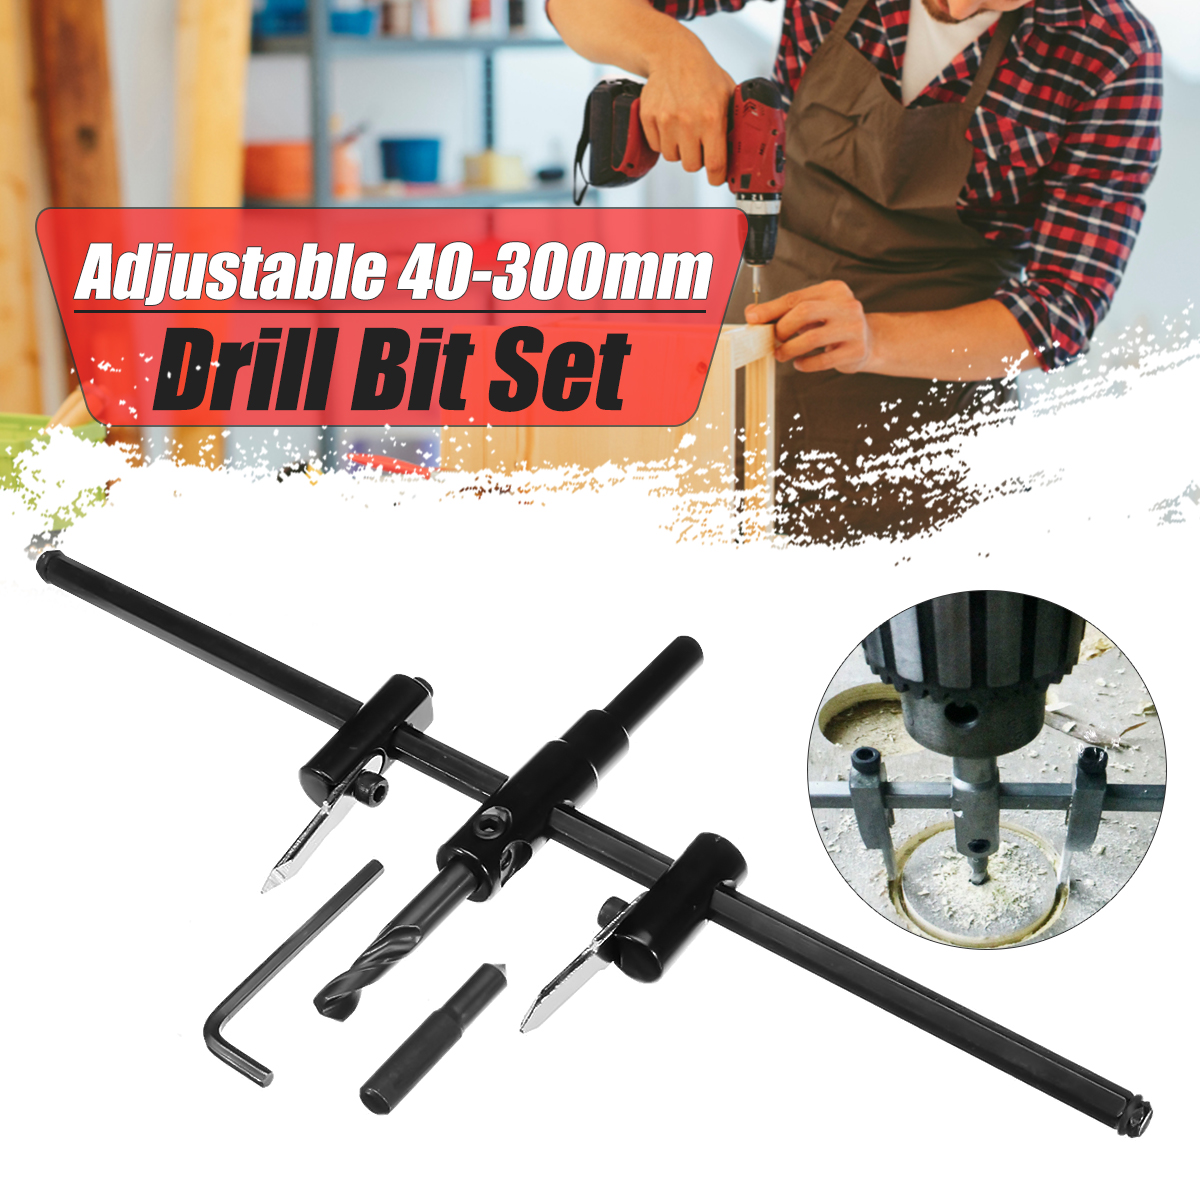 Adjustable 40-300mm Metal Wood Circle Hole Cutter Wood Drywall Drill Bit Saw Round Cutting DIY Tool wood plasterboard spot hole saw circle cutter adjustable 300mm